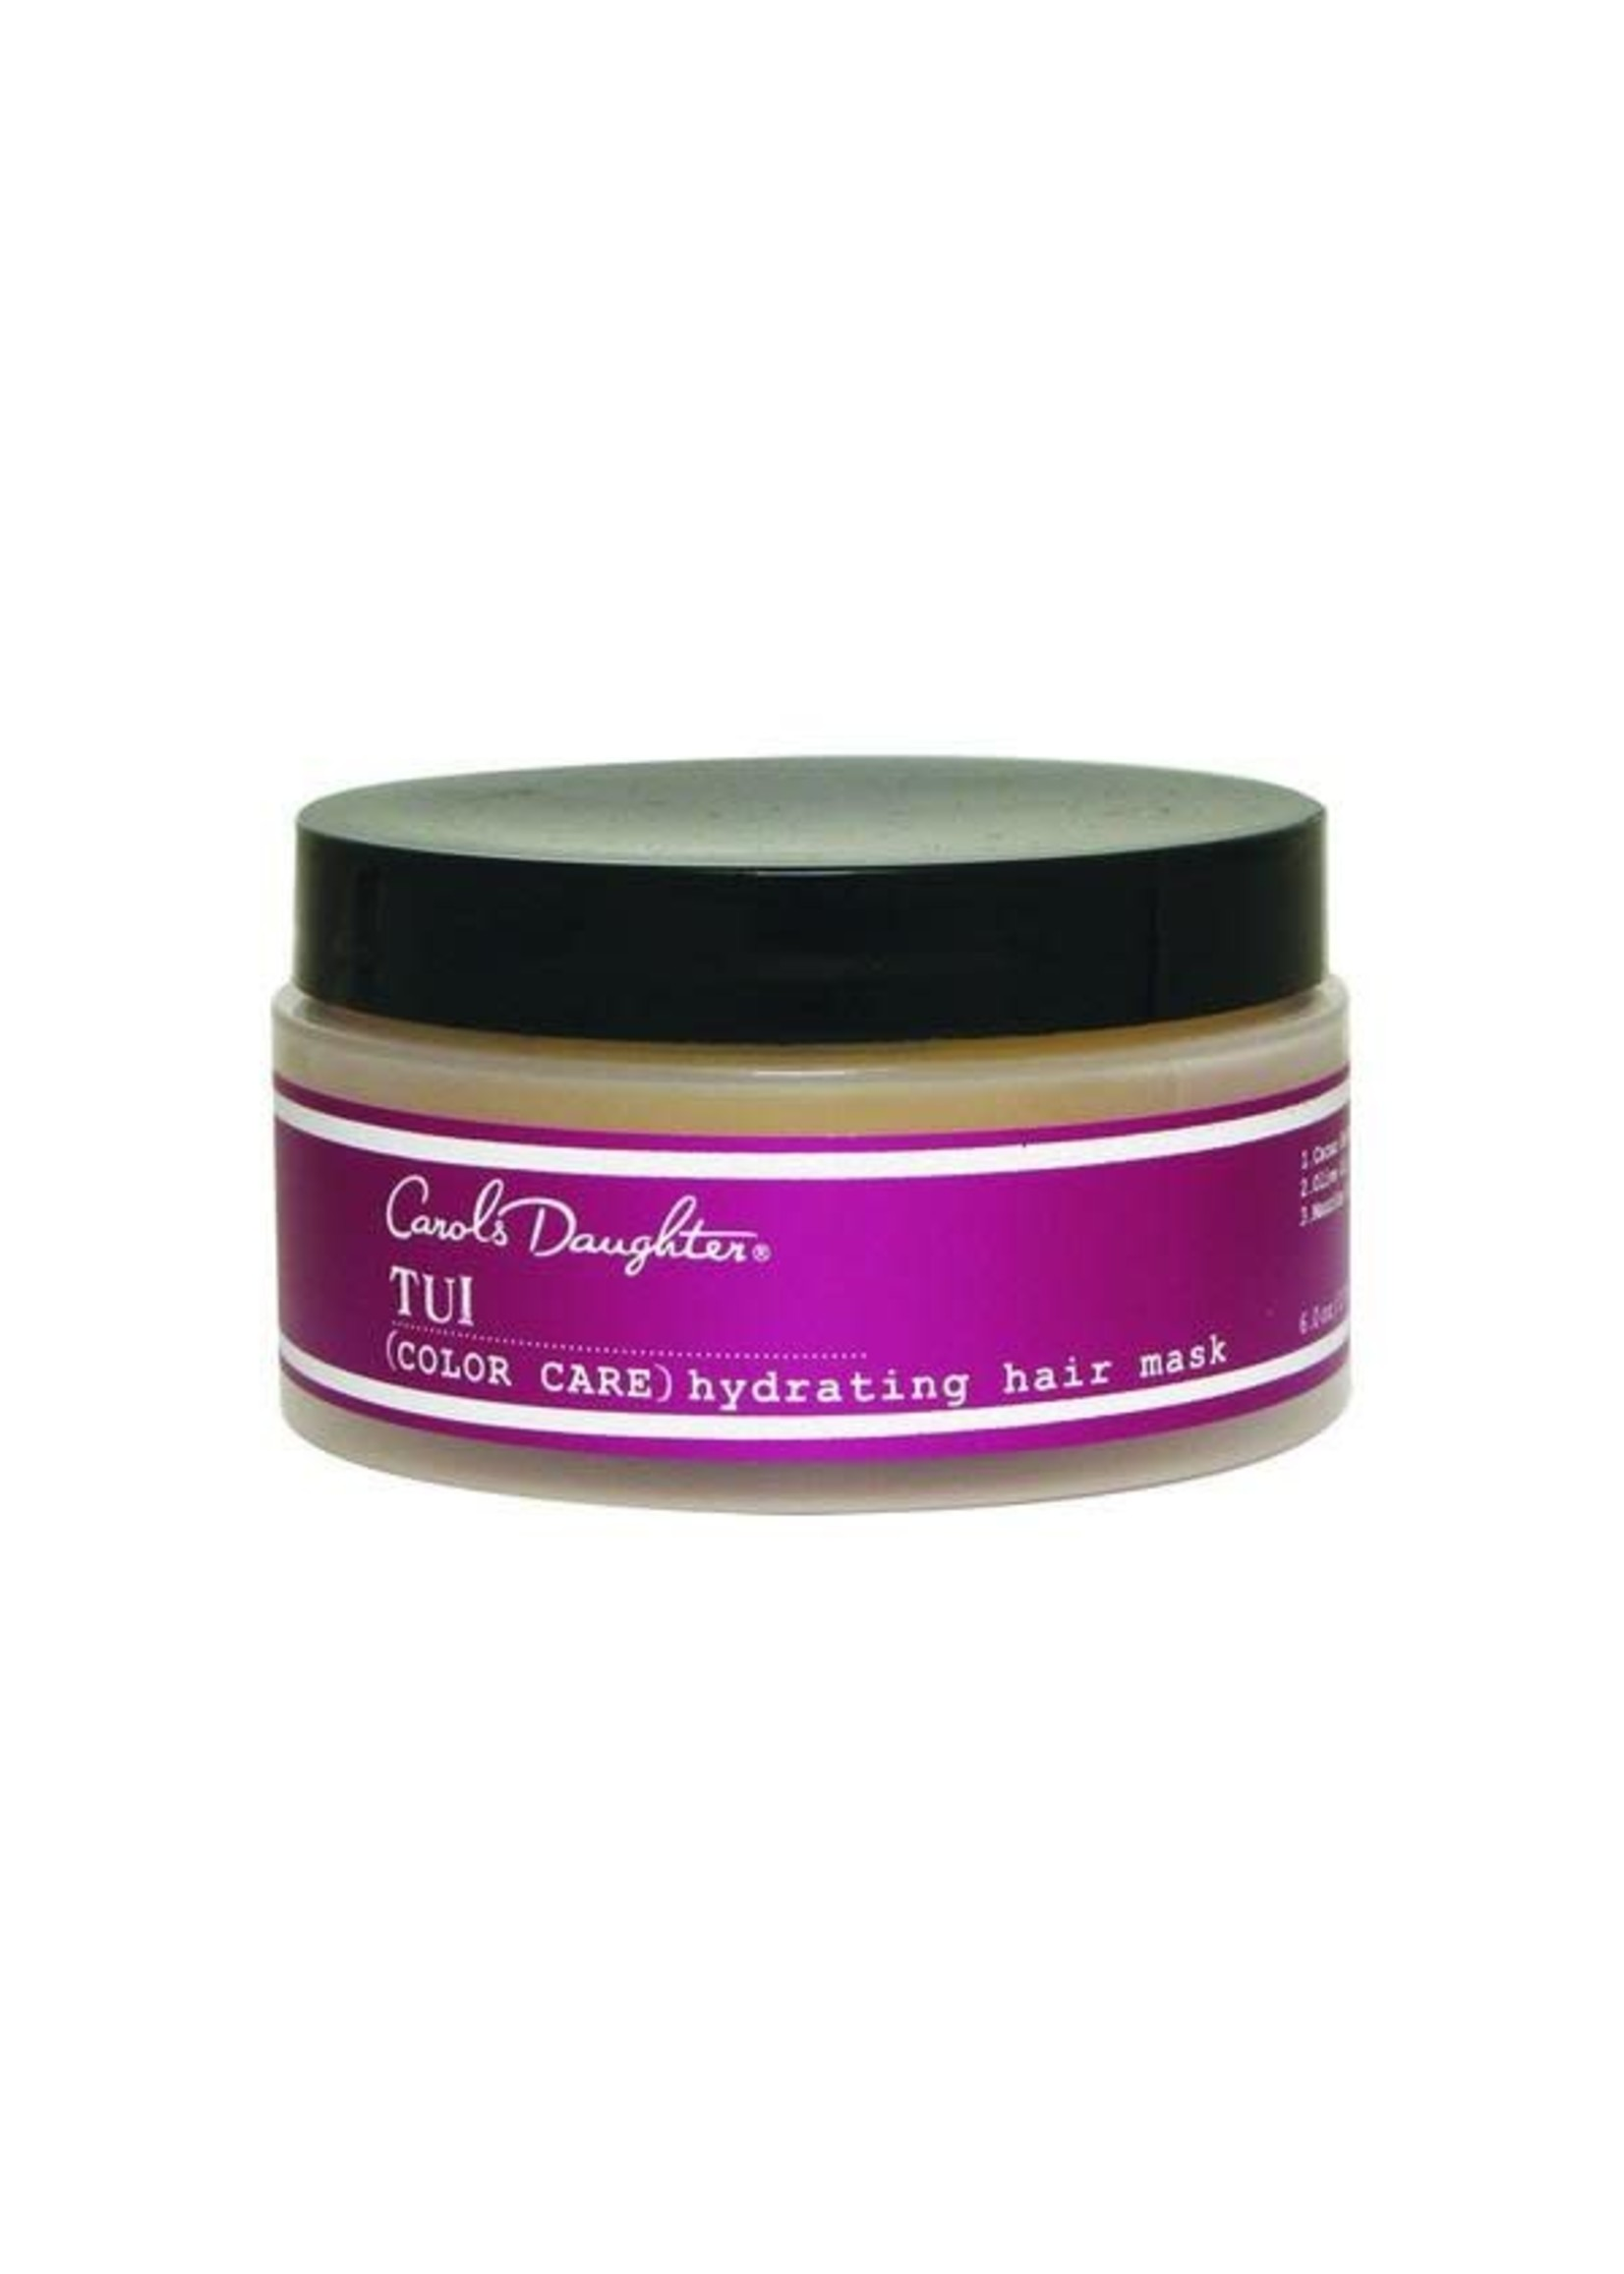 Carol's Daughter TUI Color Care Hydrating Hair Mask 6oz